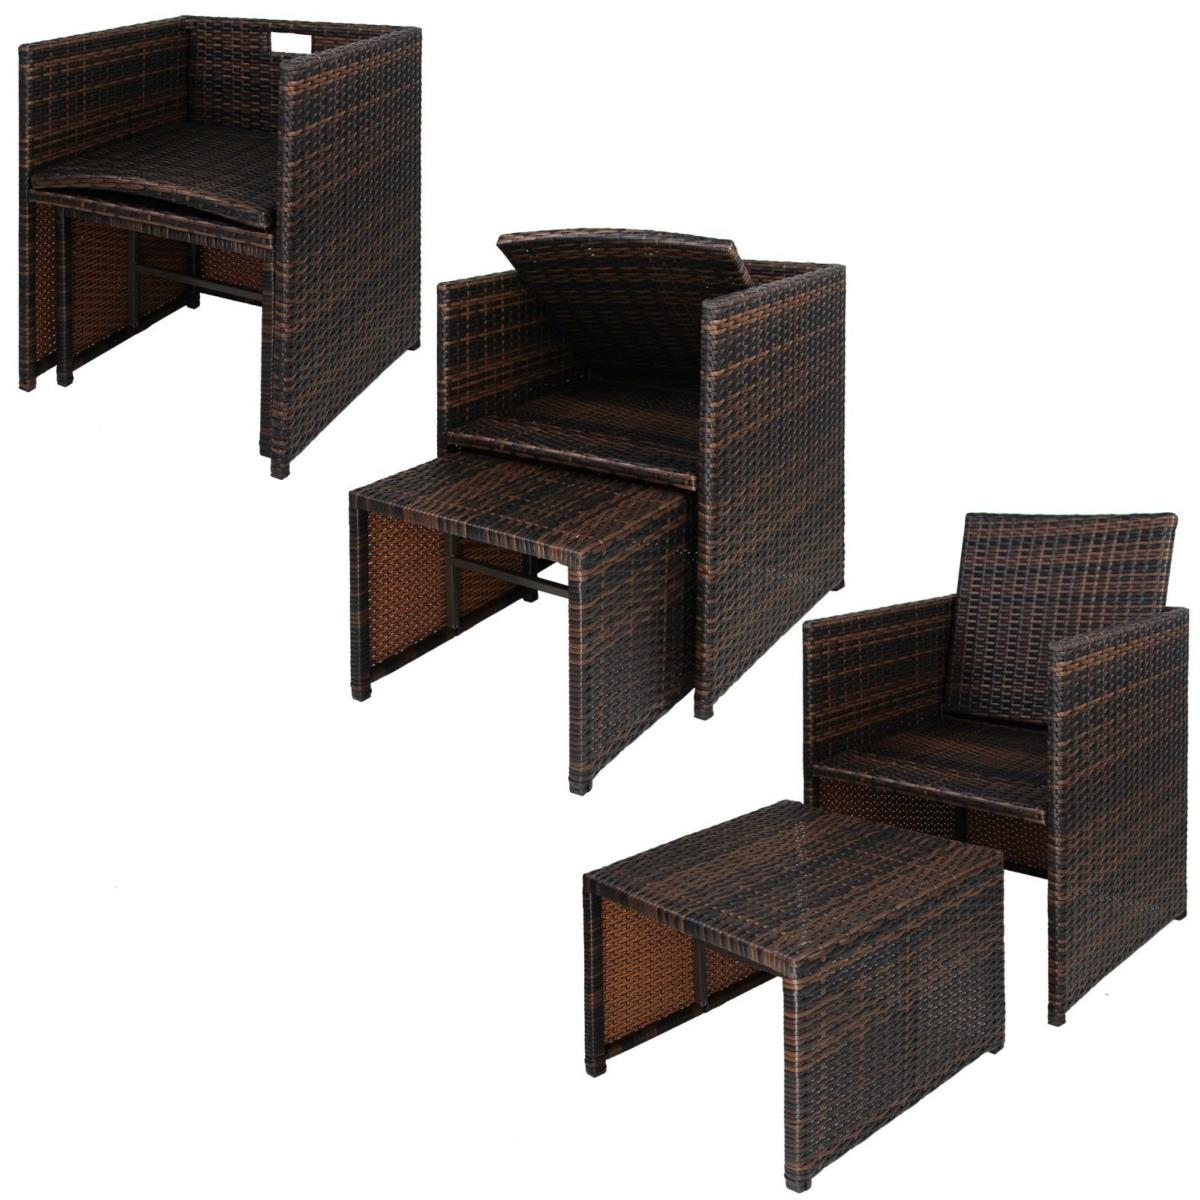 salon jardin 8 places resine tress e 2 teintes 14 coloris. Black Bedroom Furniture Sets. Home Design Ideas